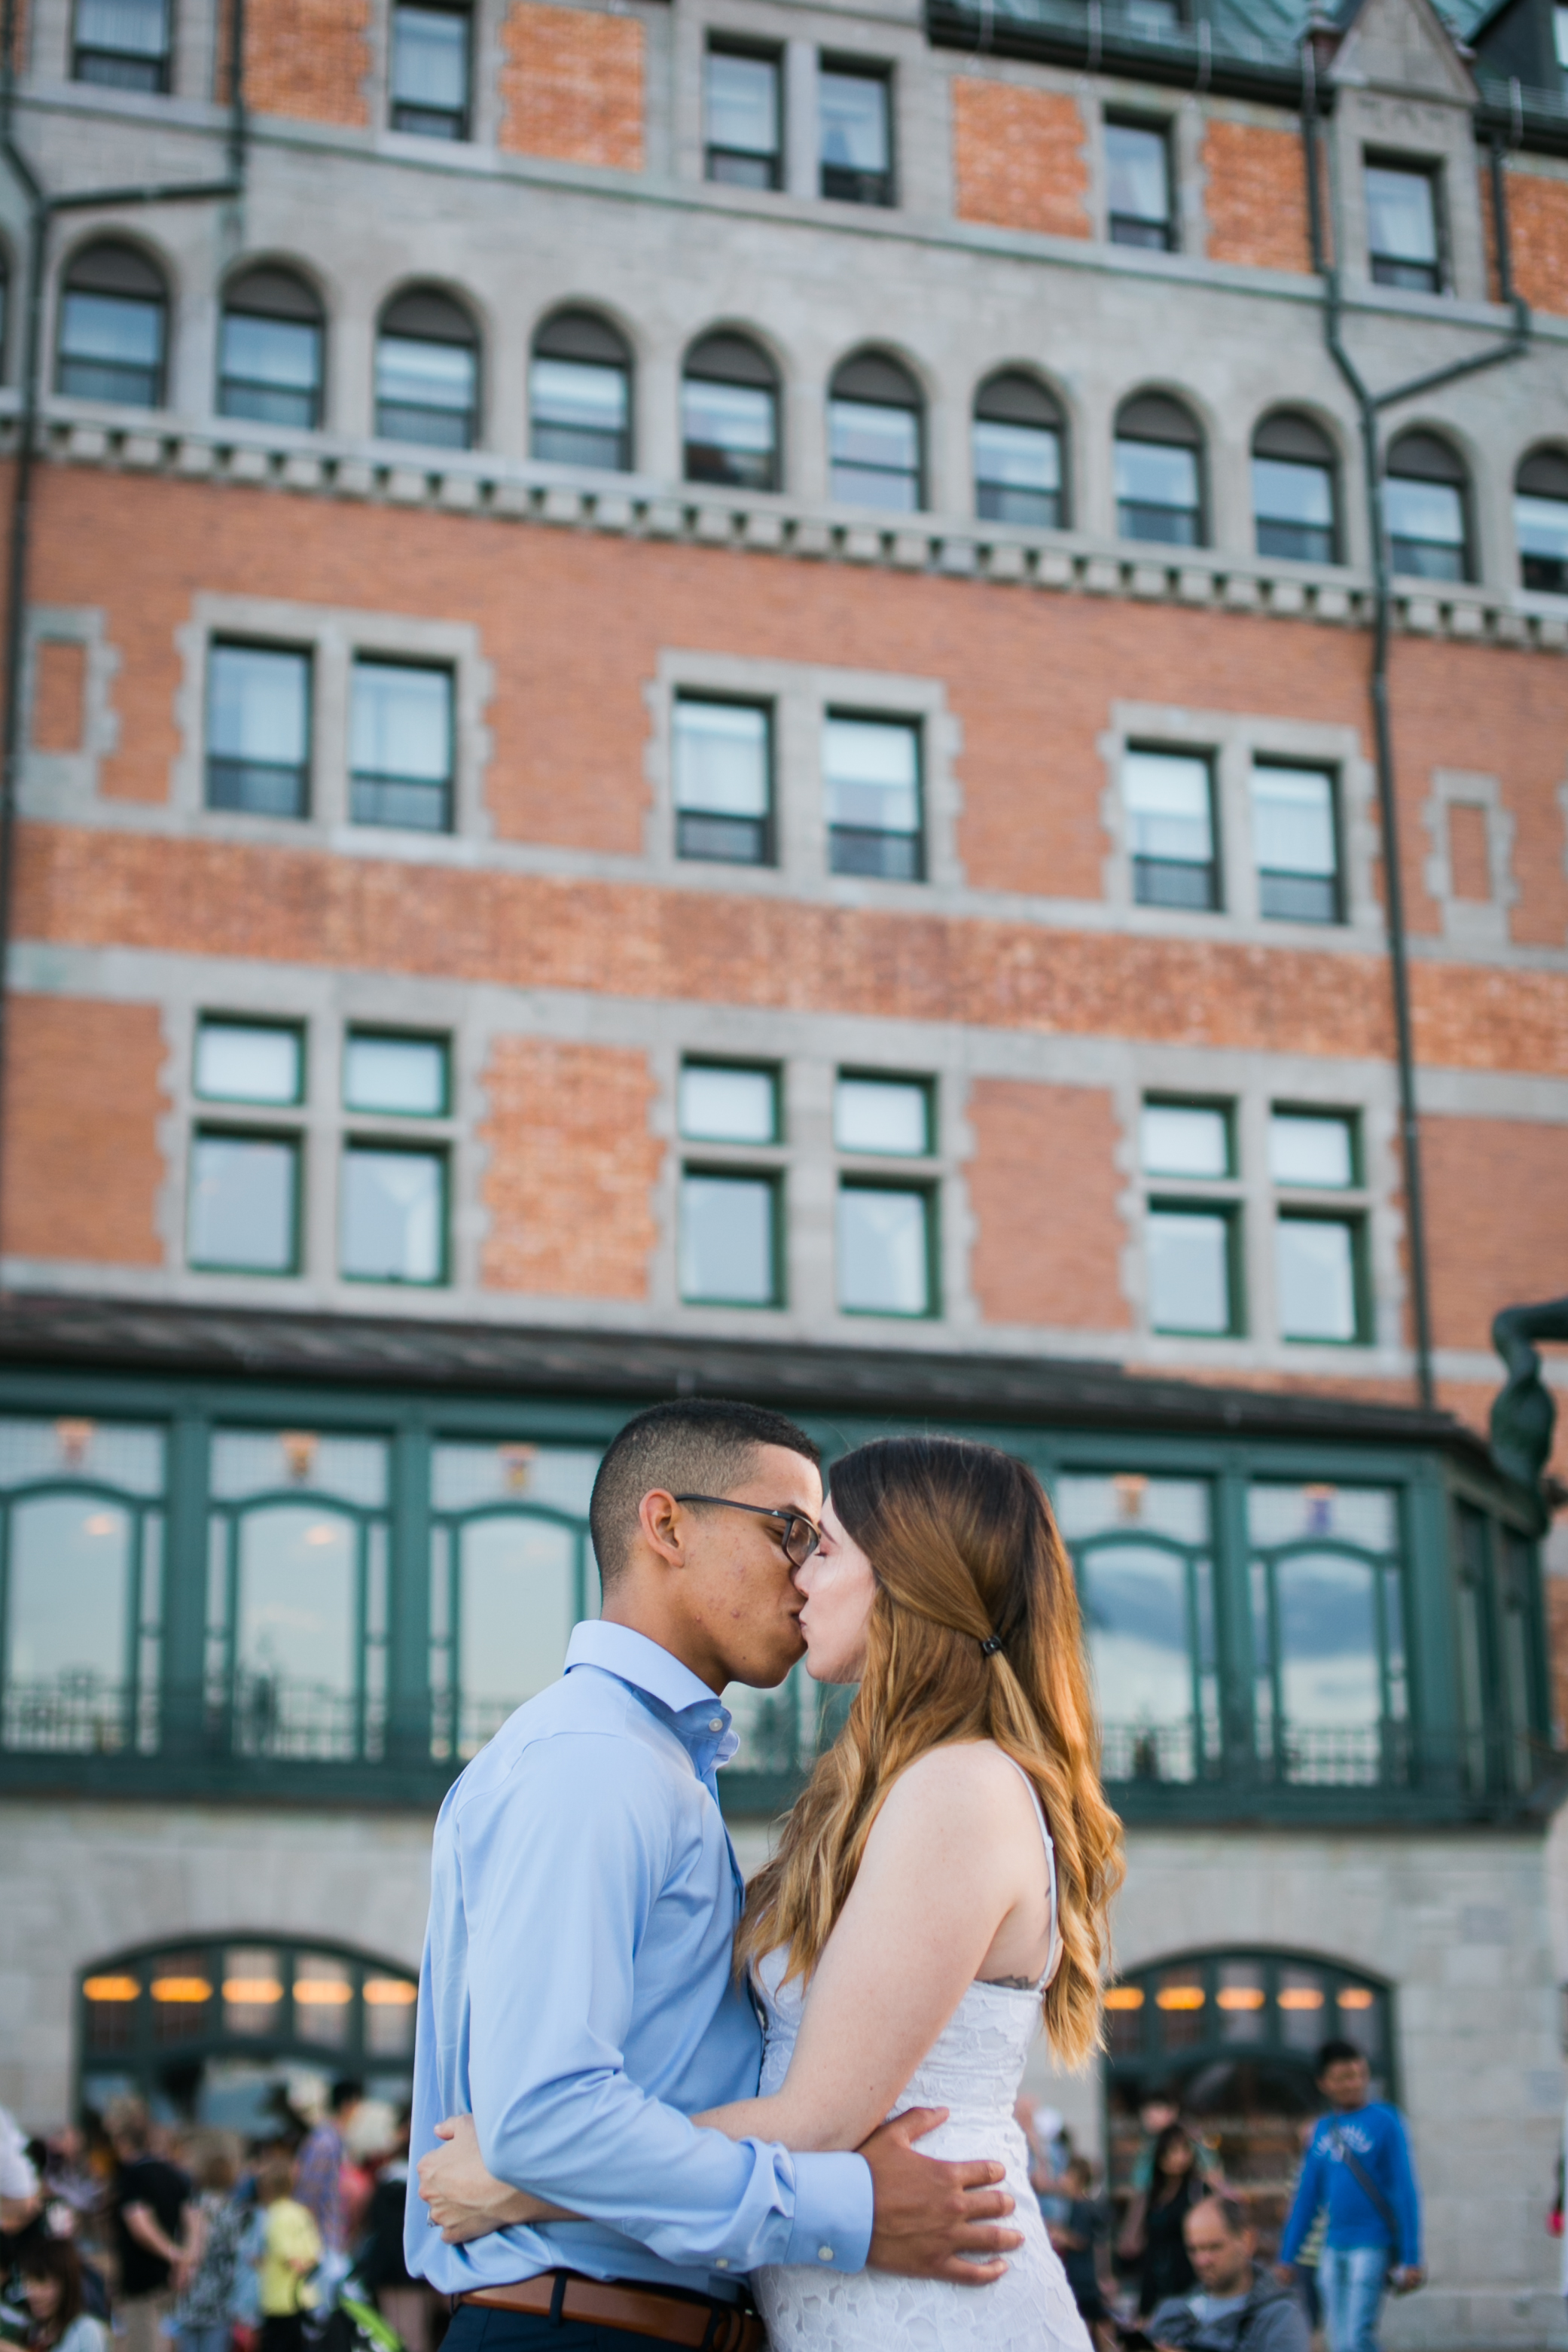 Old quebec sunset engagement photos in front of chateau frontenac16.jpg